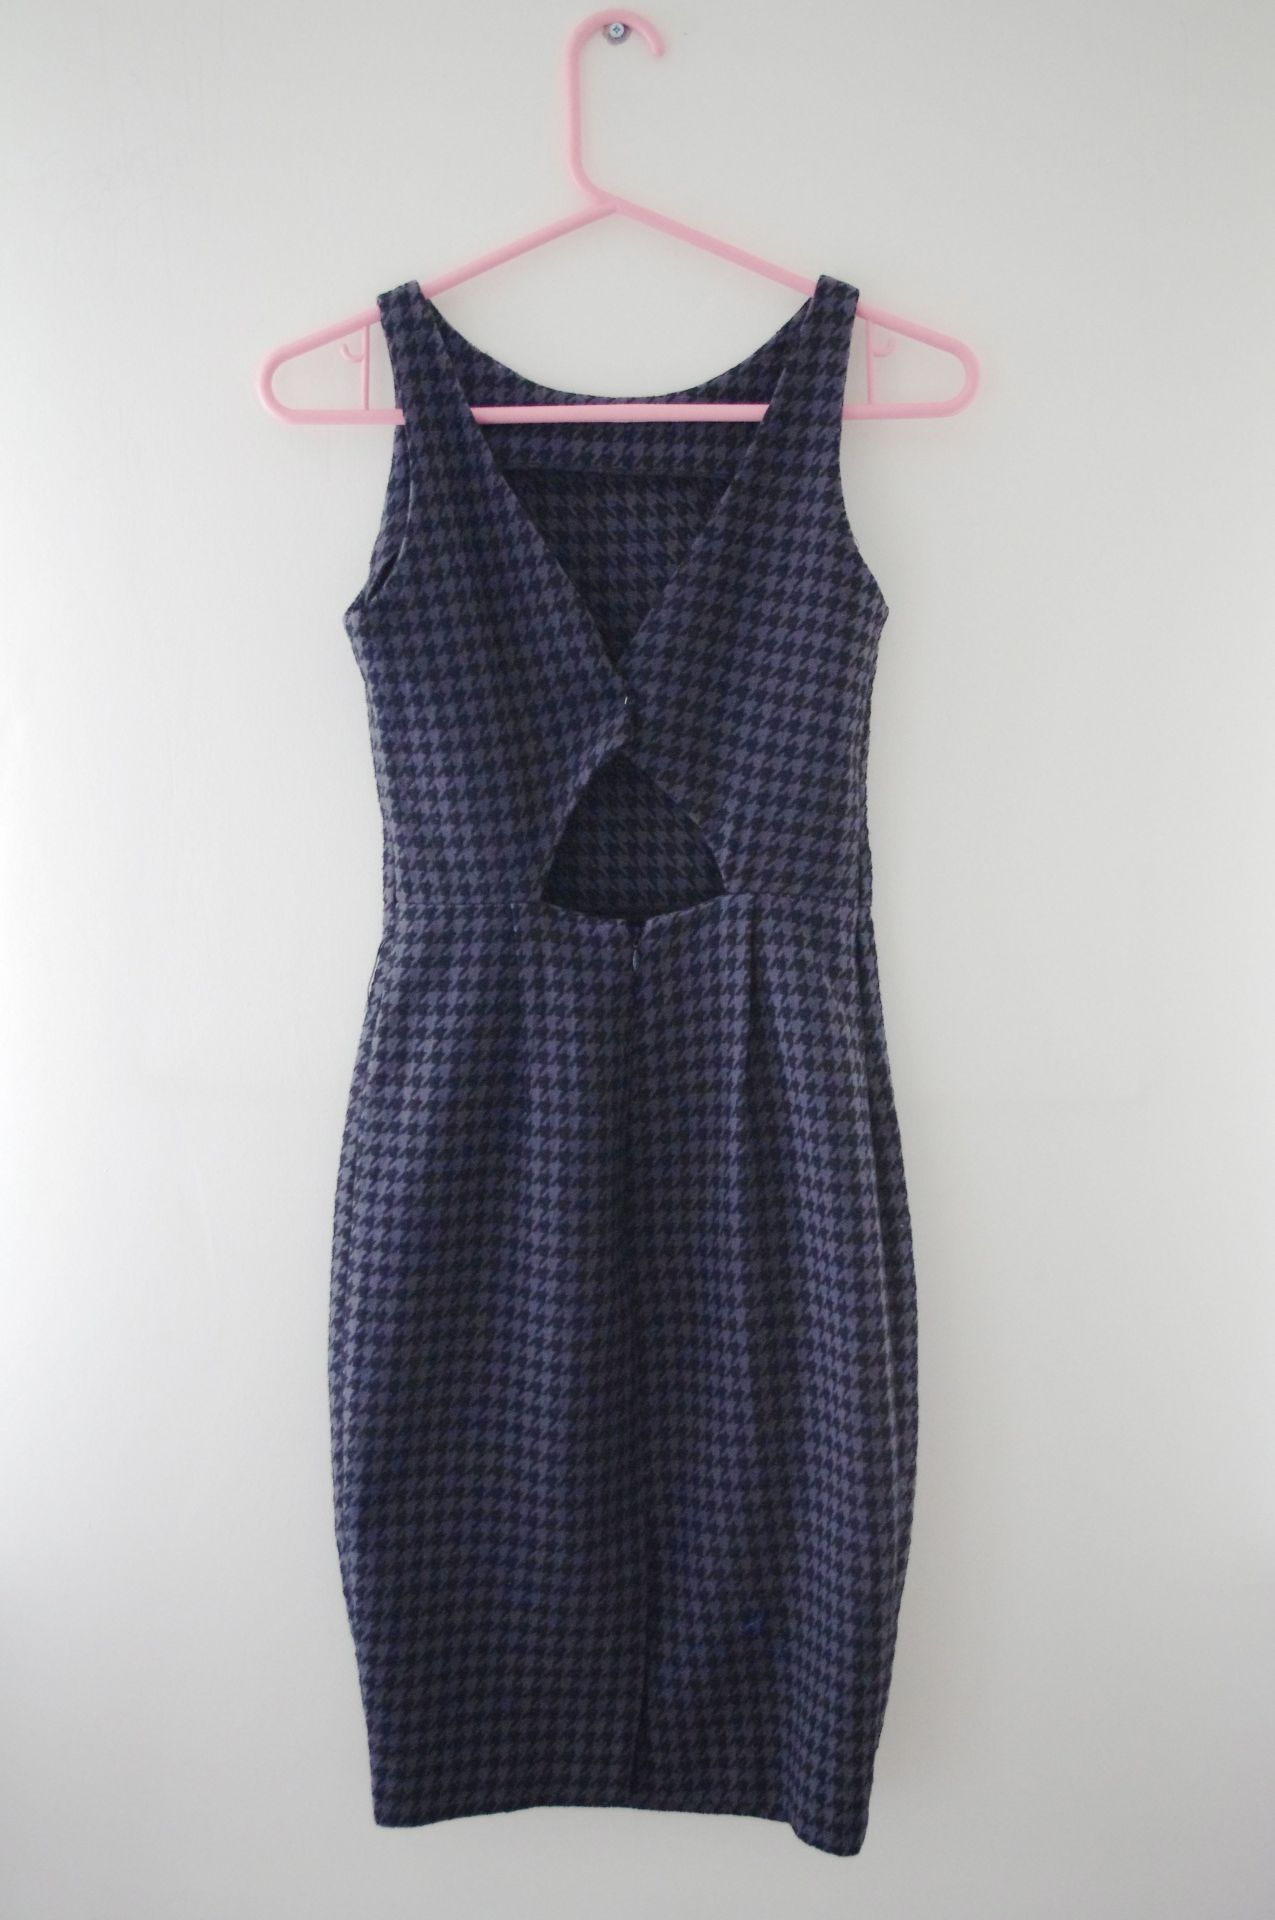 meala-vintage:  Hourglass Dogtooth Check Dress, Currently Only 99p, Available Here